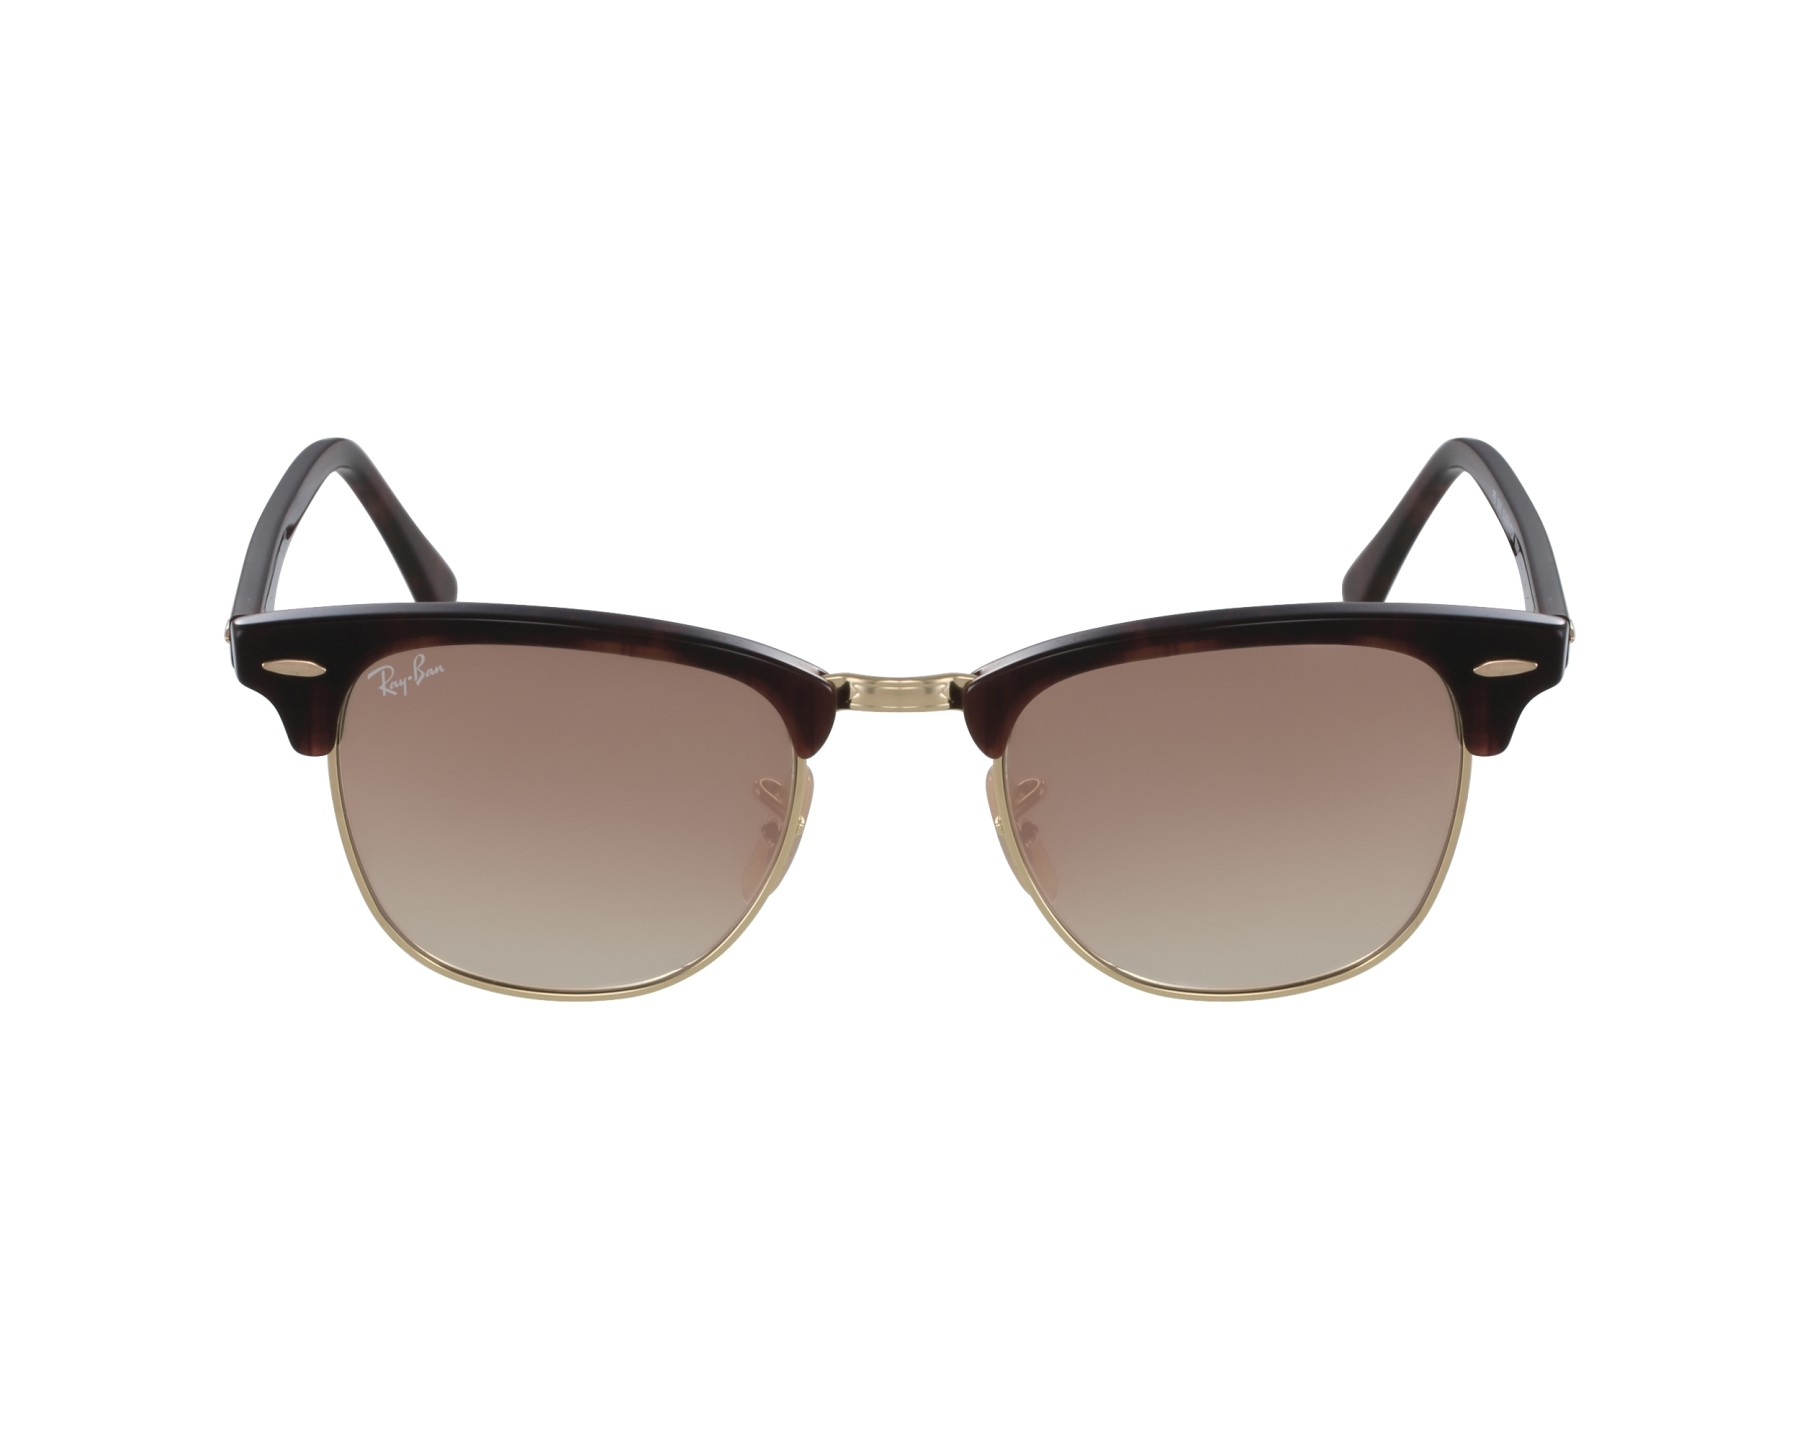 ray ban rb3016 classic clubmaster sunglasses r7n5  ray ban rb3016 classic clubmaster sunglasses